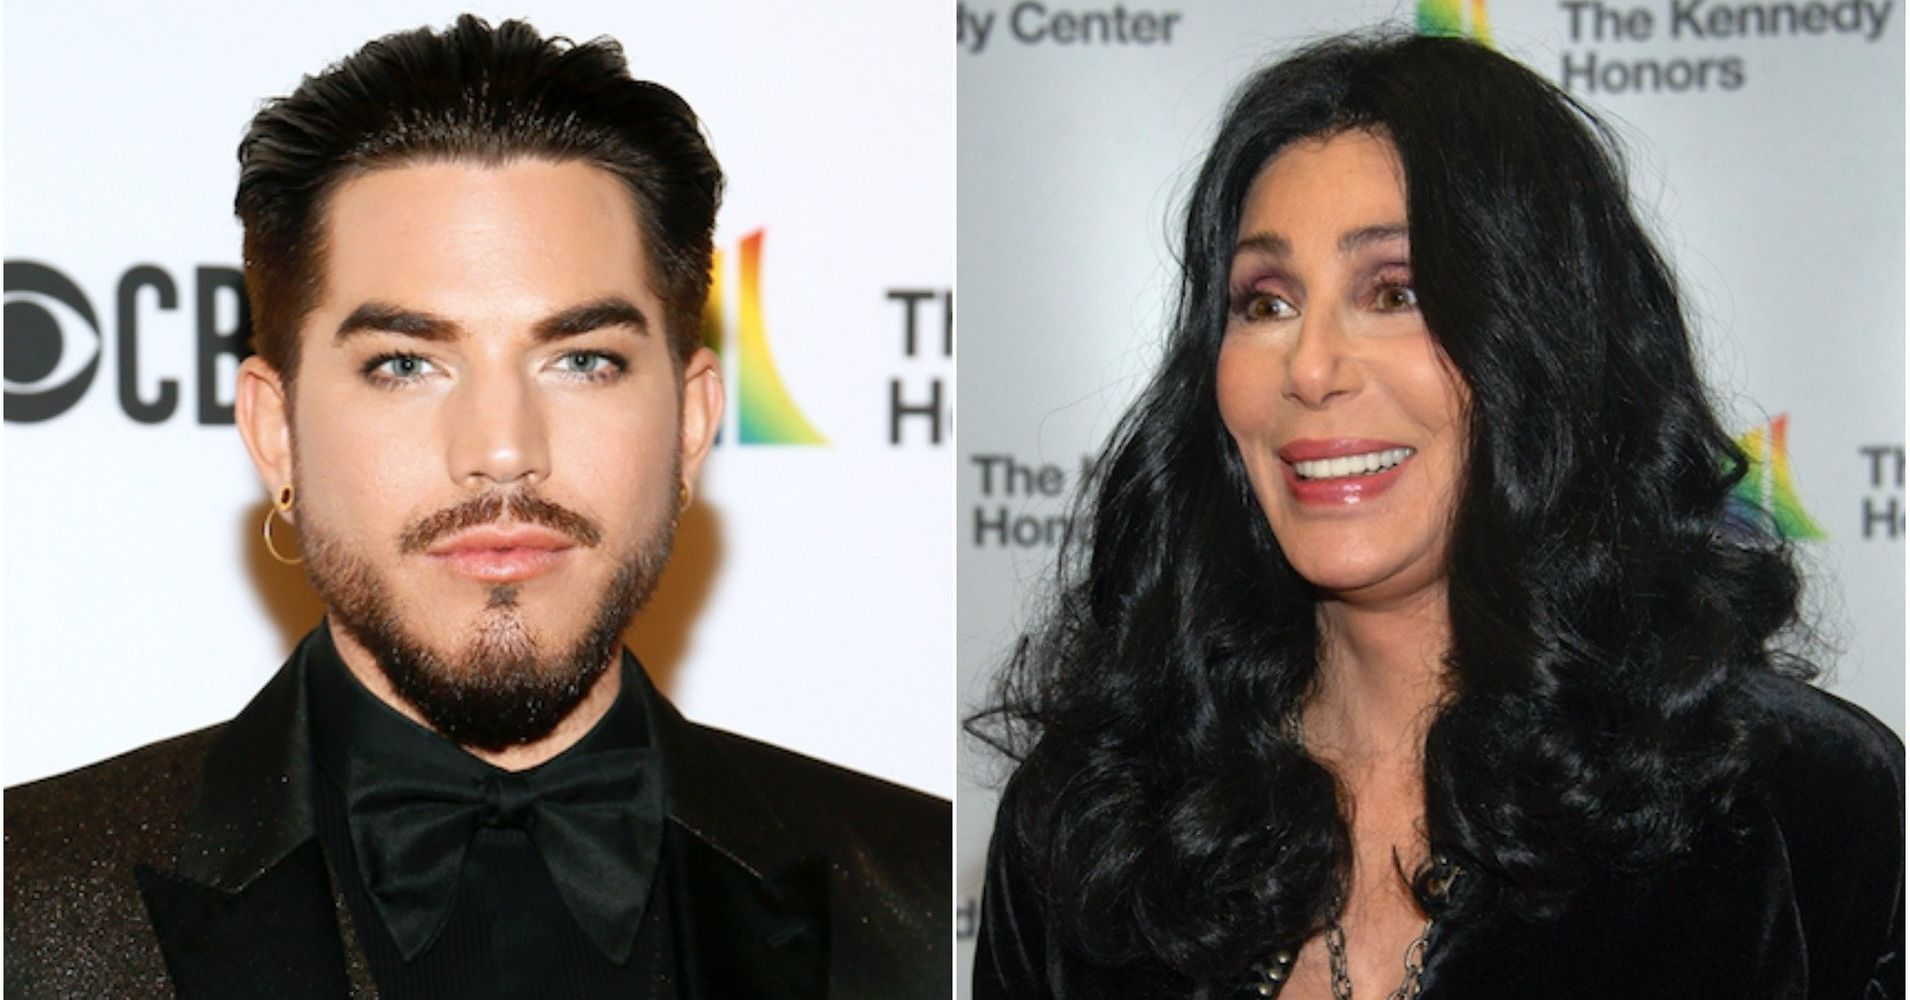 Watch Adam Lambert Move Cher To Tears With Riveting Believe Cover